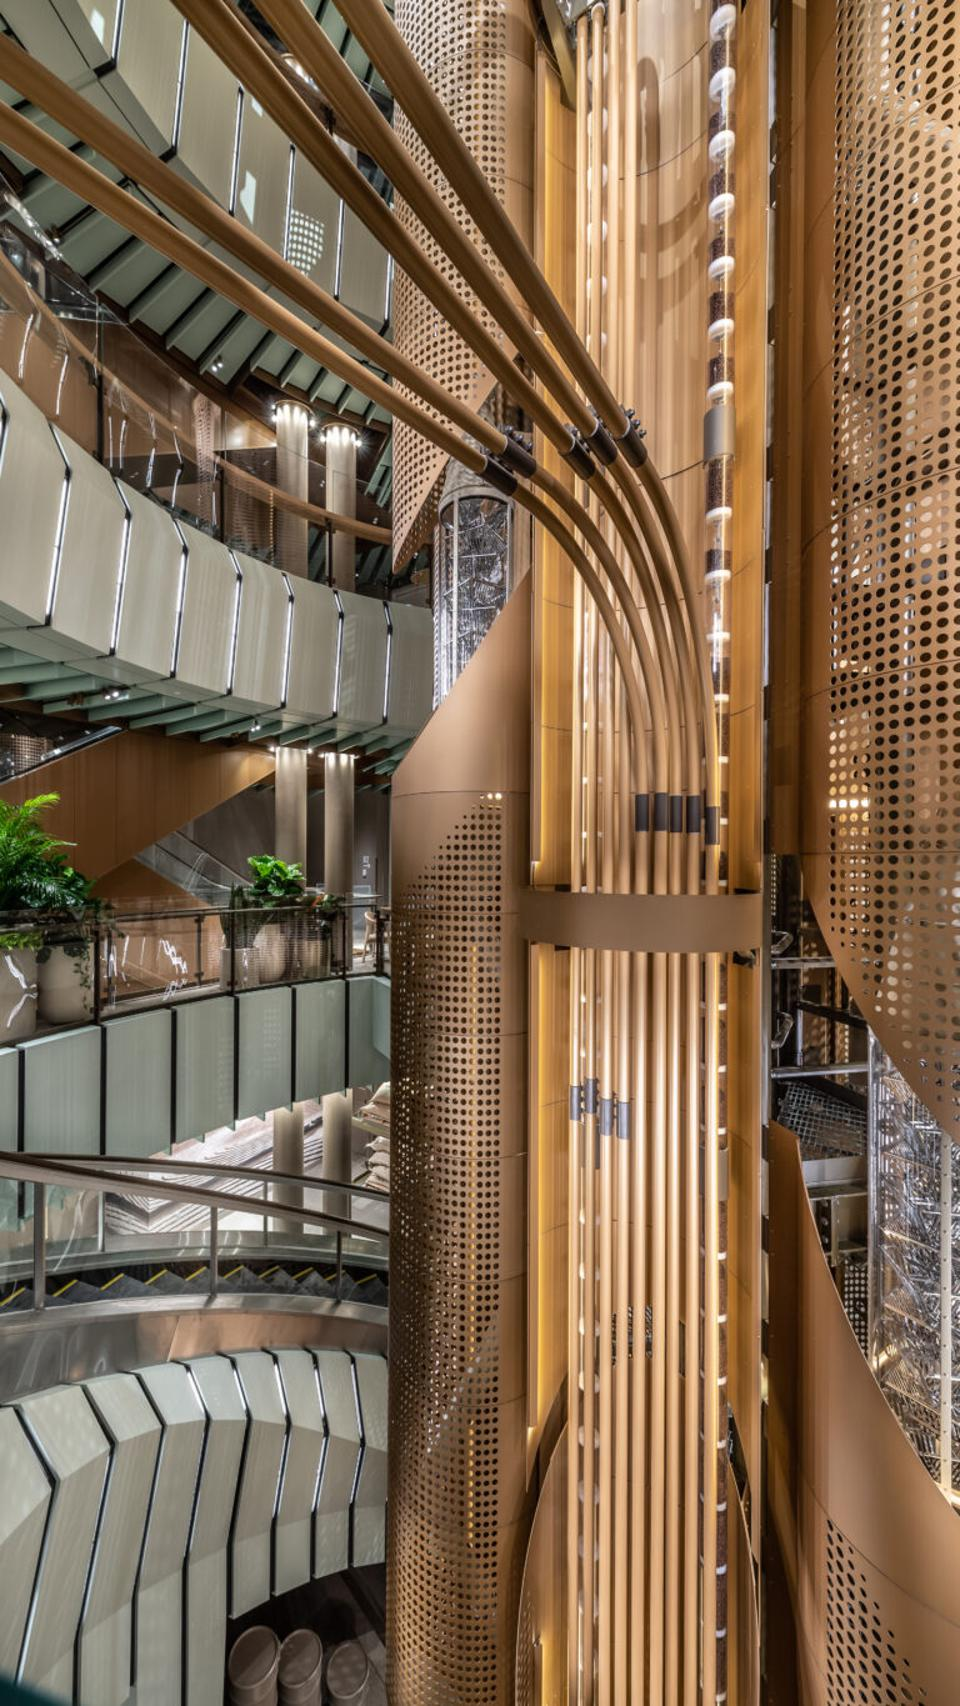 """""""We envisioned this five-story experience that would pull people from the ground floor all the way up and tell this really beautiful story about the growing of coffee...Before you know it, you walked five floors and you've gotten this really amazing journey, ever upwards."""" - Jill Enomoto"""